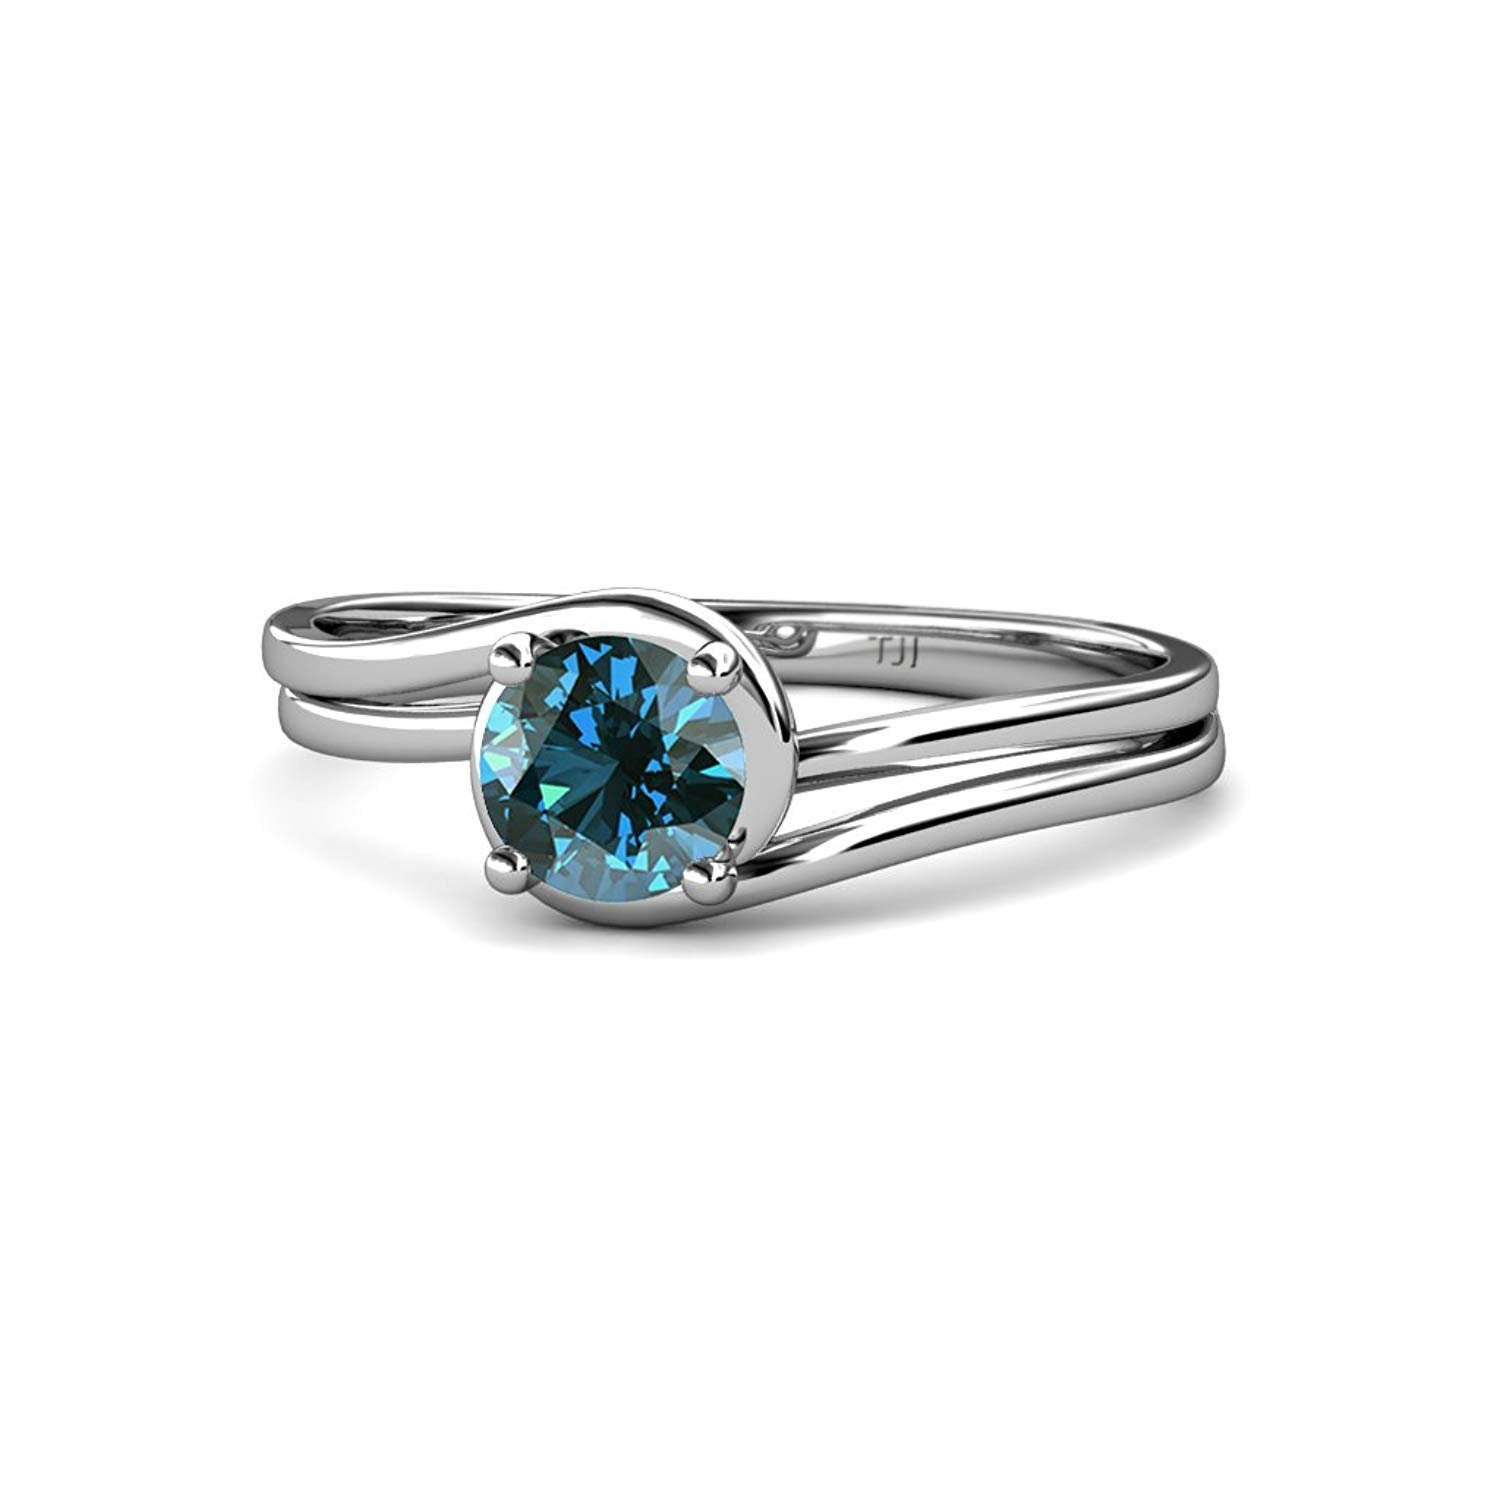 Blue Diamond Bypass Solitaire Engagement Ring 0.63 ct in 14K White Gold.size 5.0 by TriJewels